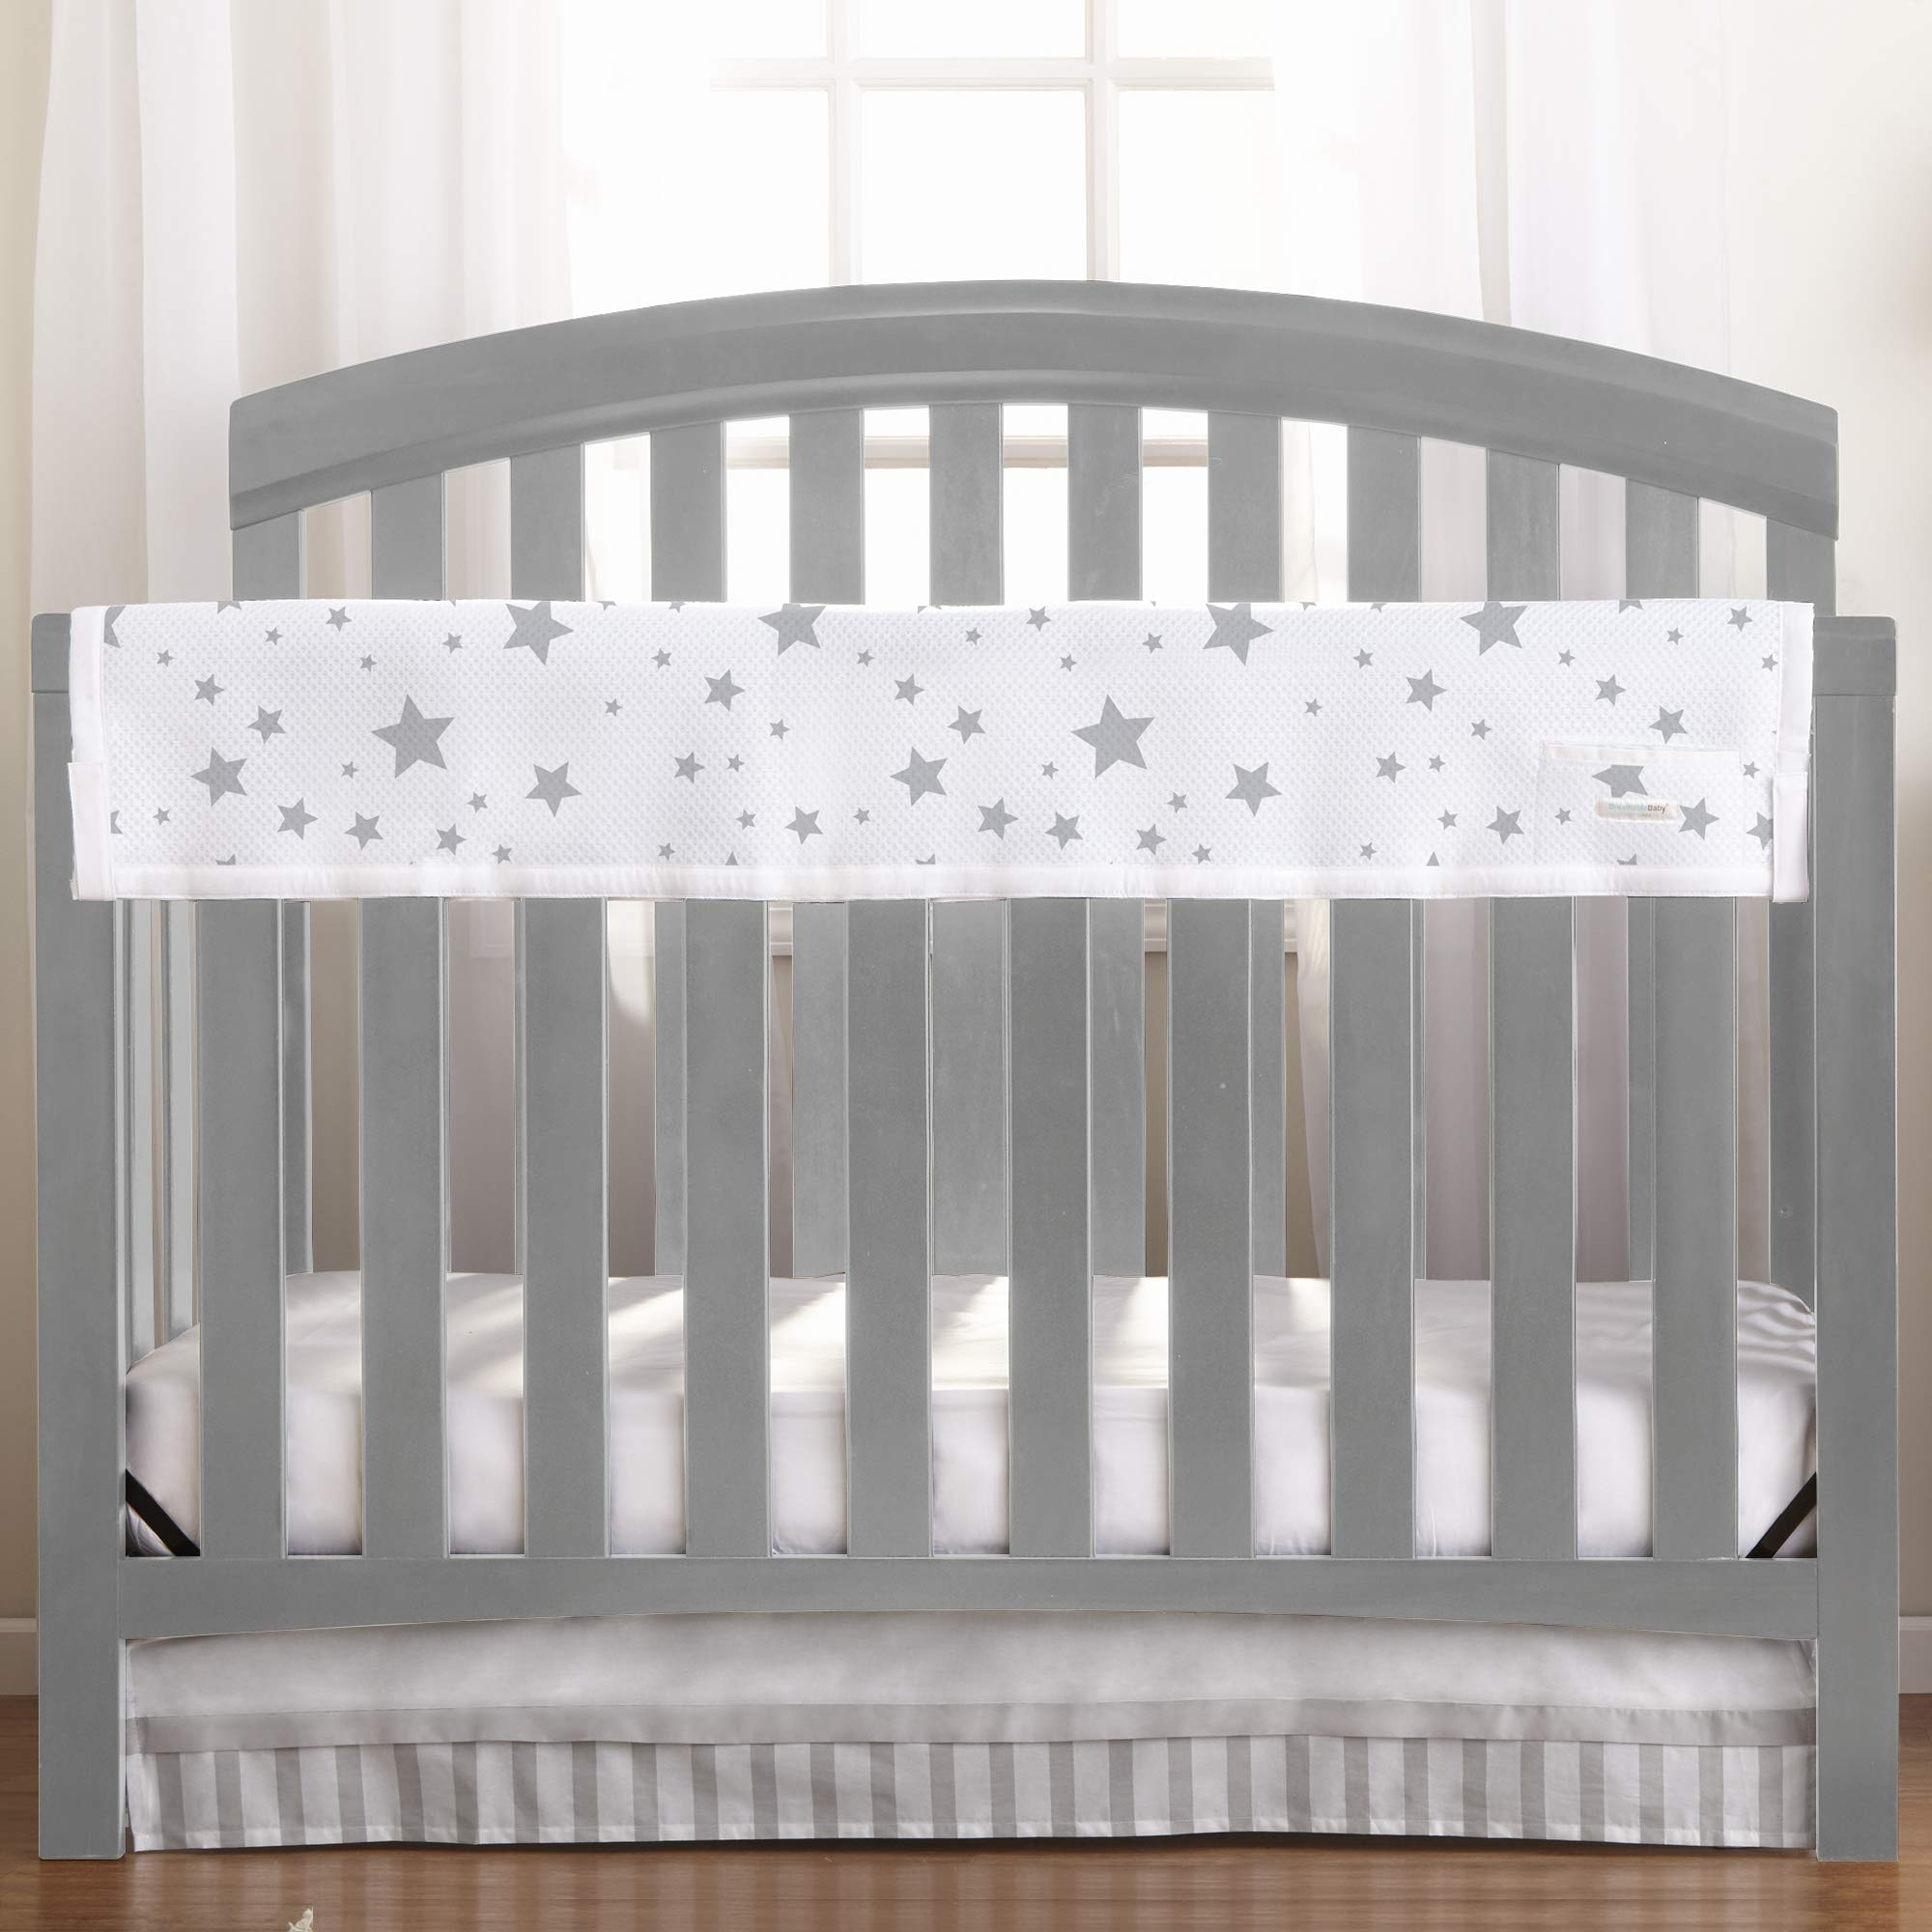 BreathableBaby Railguard Crib Rail Cover - Star Light White and Gray by BreathableBaby